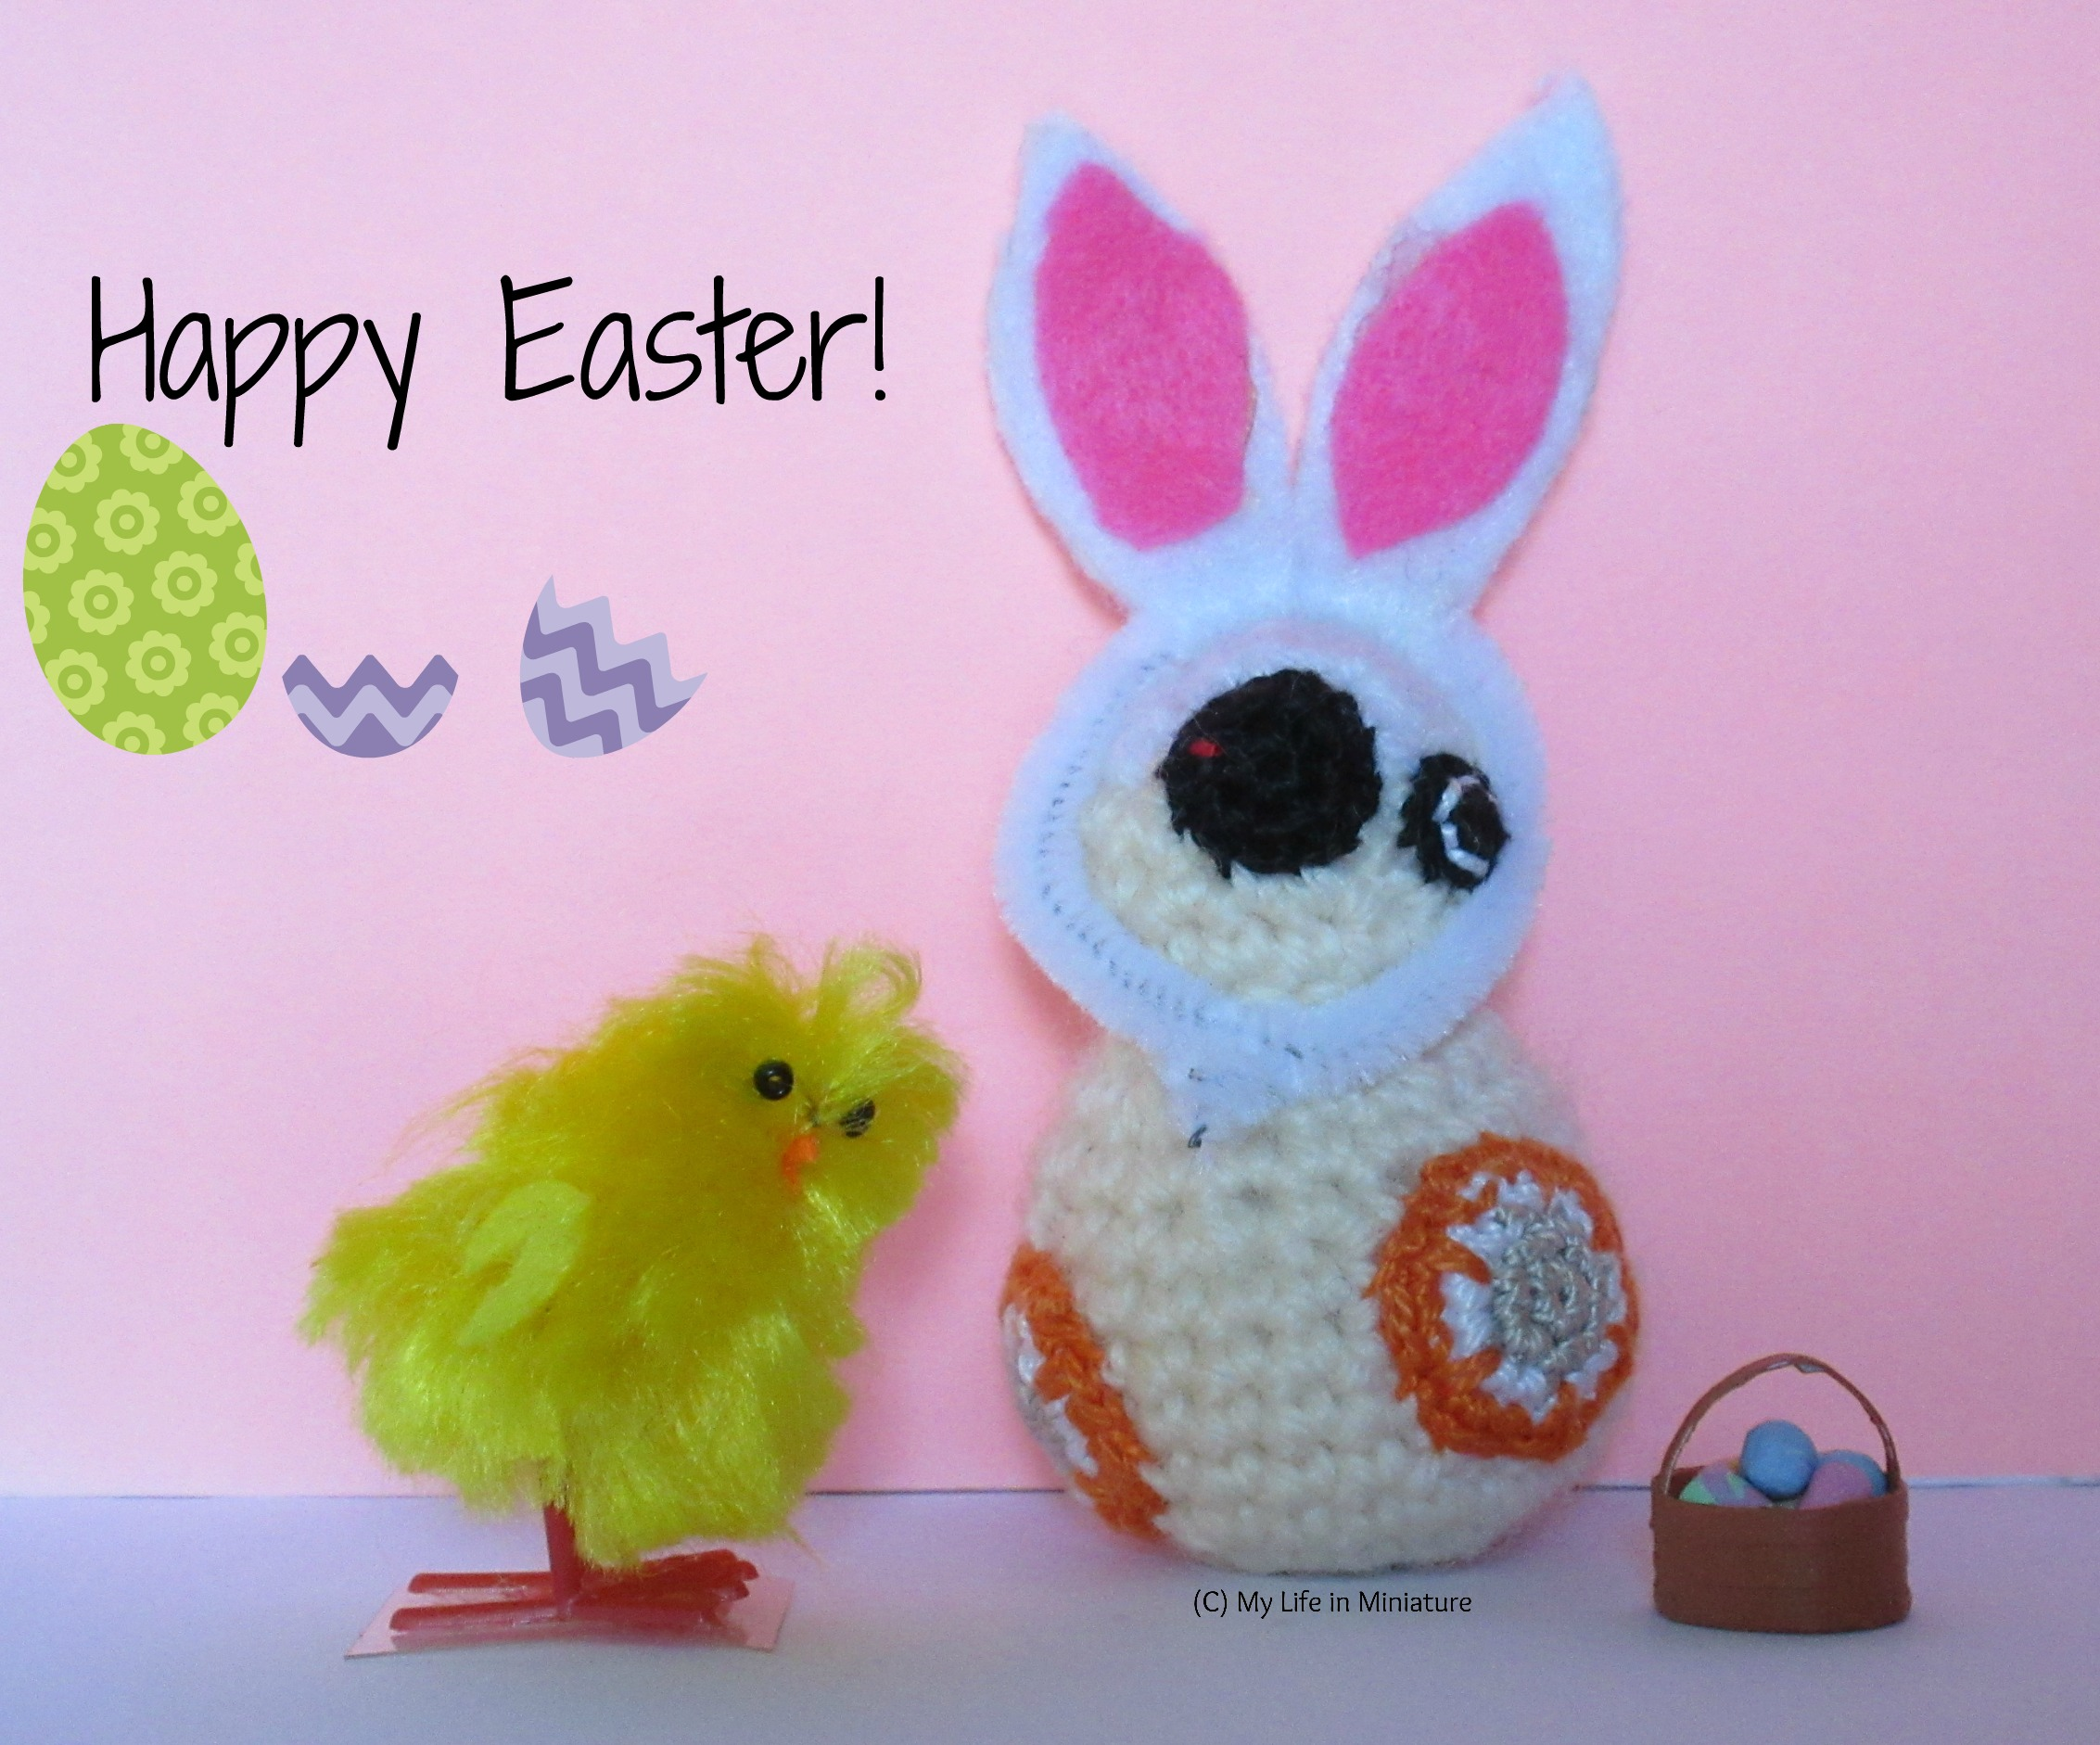 BB-8 sits in front of a pink background, wearing bunny ears. A plastic chick is beside him, as well as a basket of painted eggs. The words 'Happy Easter!' are to the top left, surrounded by egg graphics.